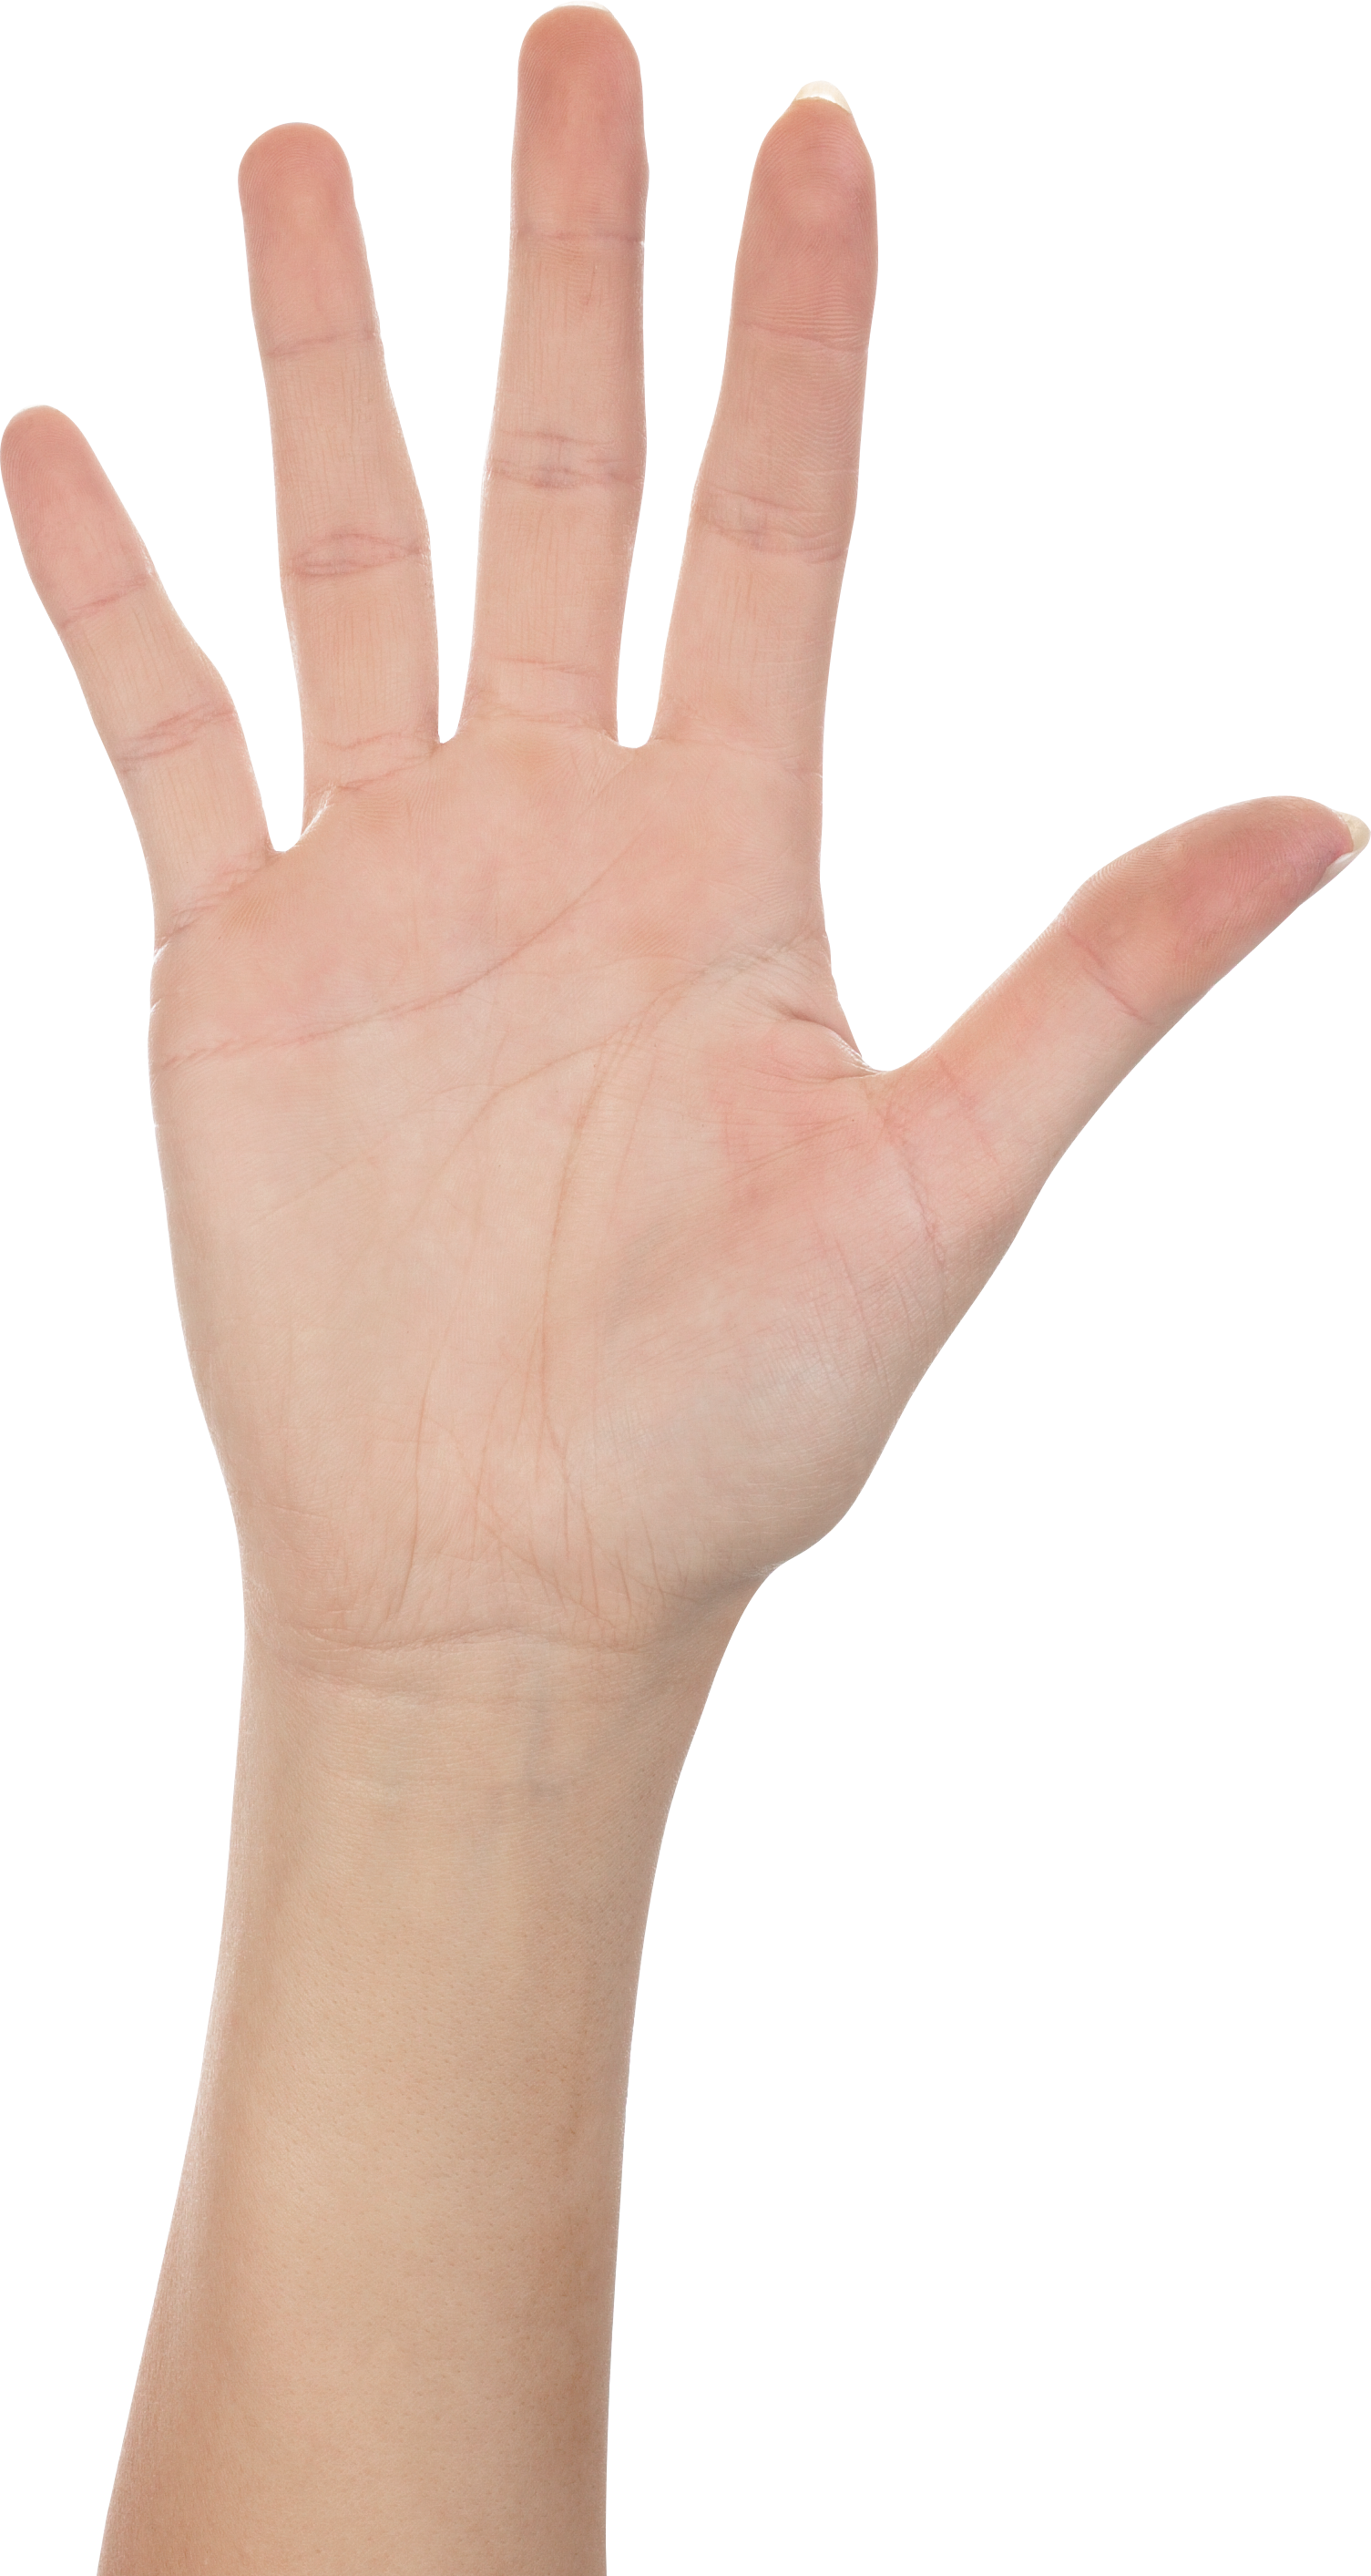 Five Finger Hand PNG Image.